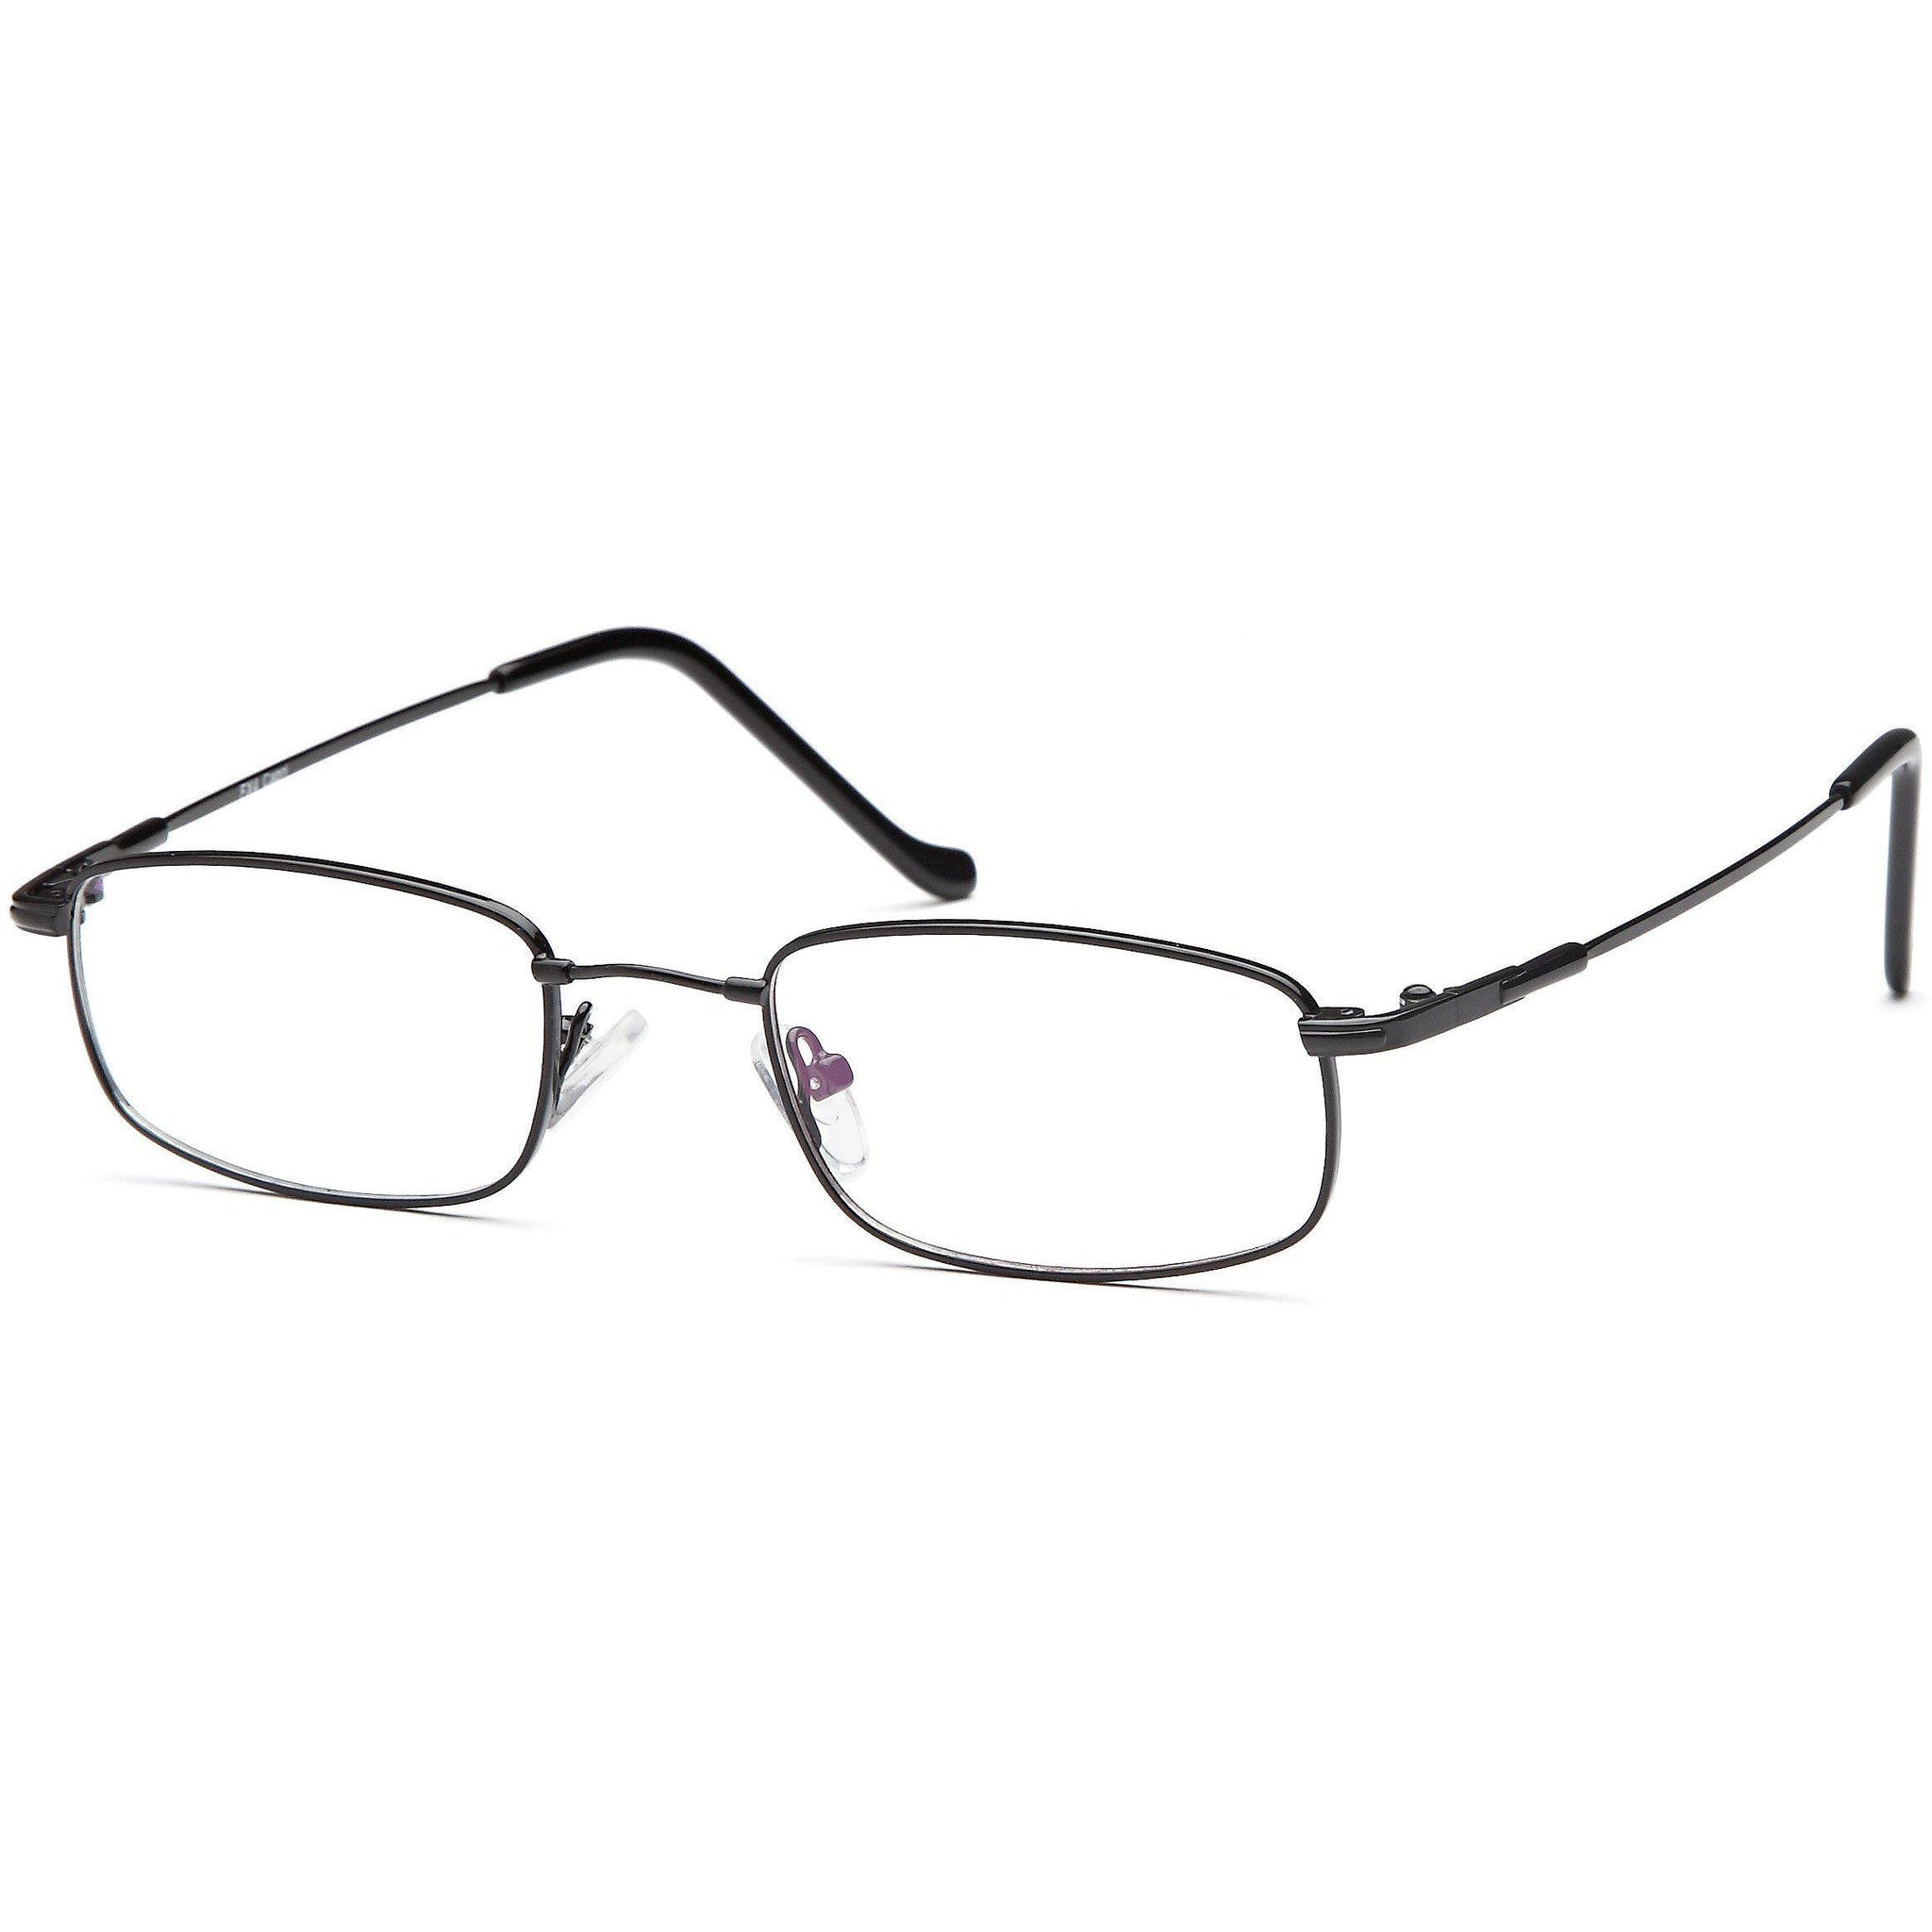 Titanium Prescription Glasses FX 4 Eyeglasses Frame